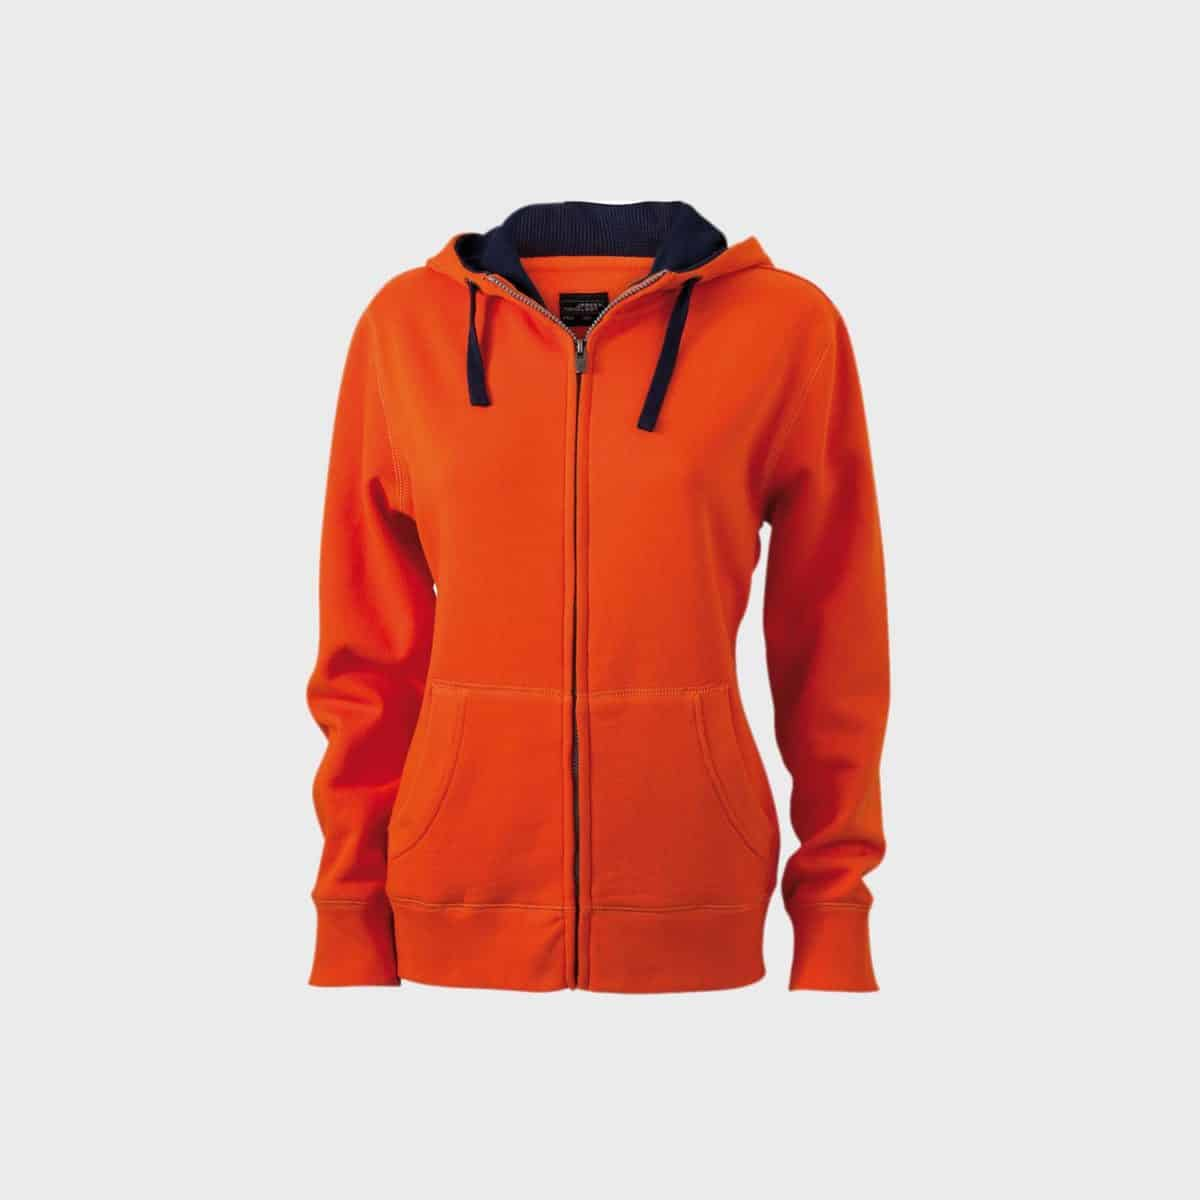 zip-hoodie-sweat-jacket-damen-darkorange-navy-kaufen-besticken_stickmanufaktur